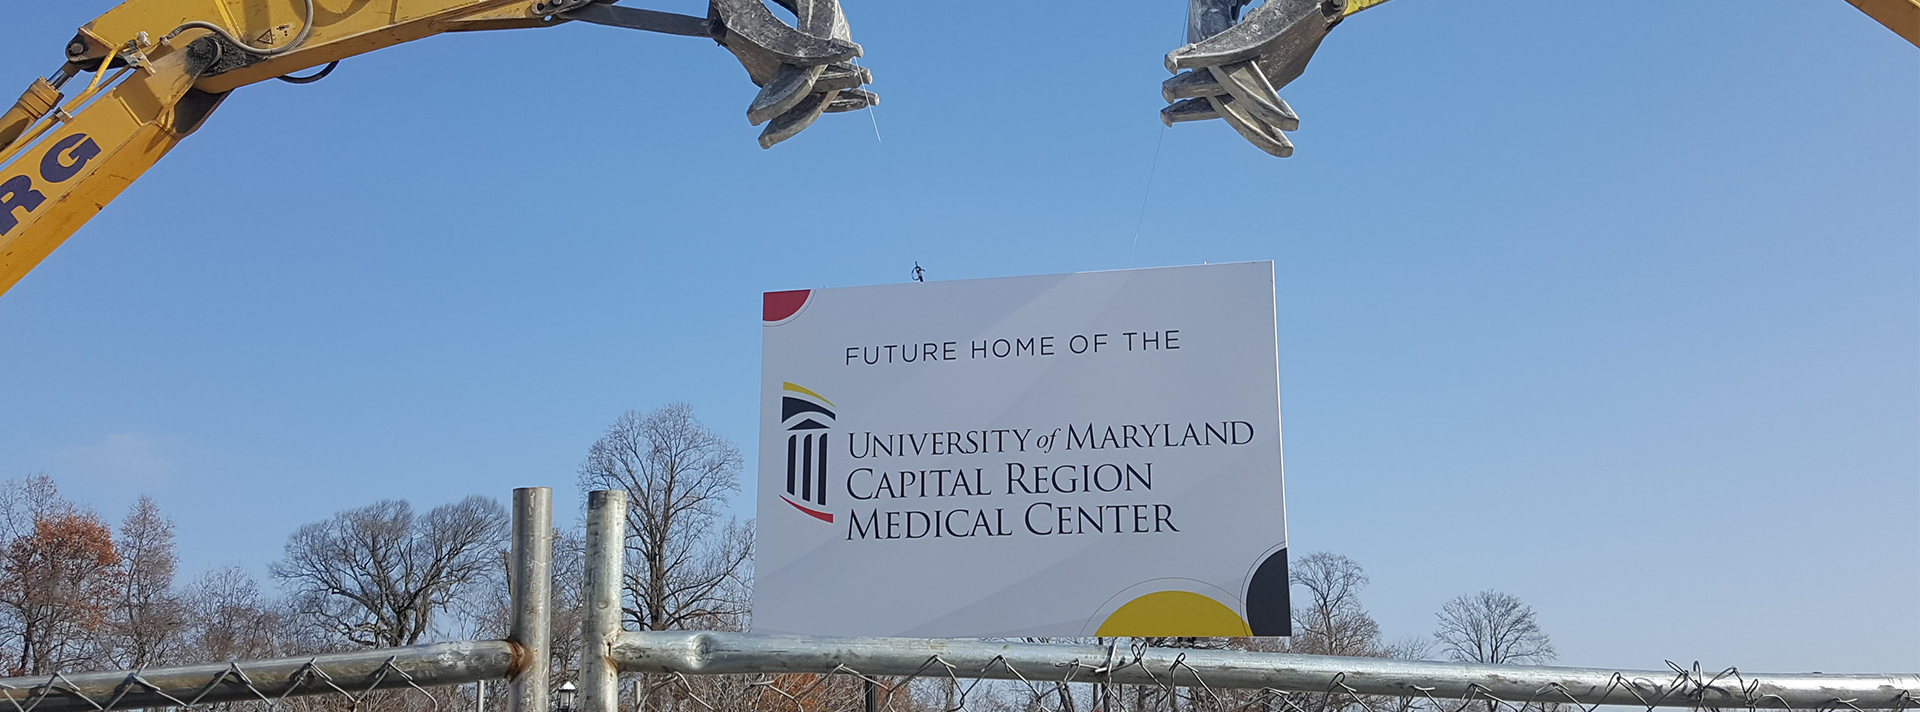 University of Maryland Capital Region Medical Center Groundbreaking